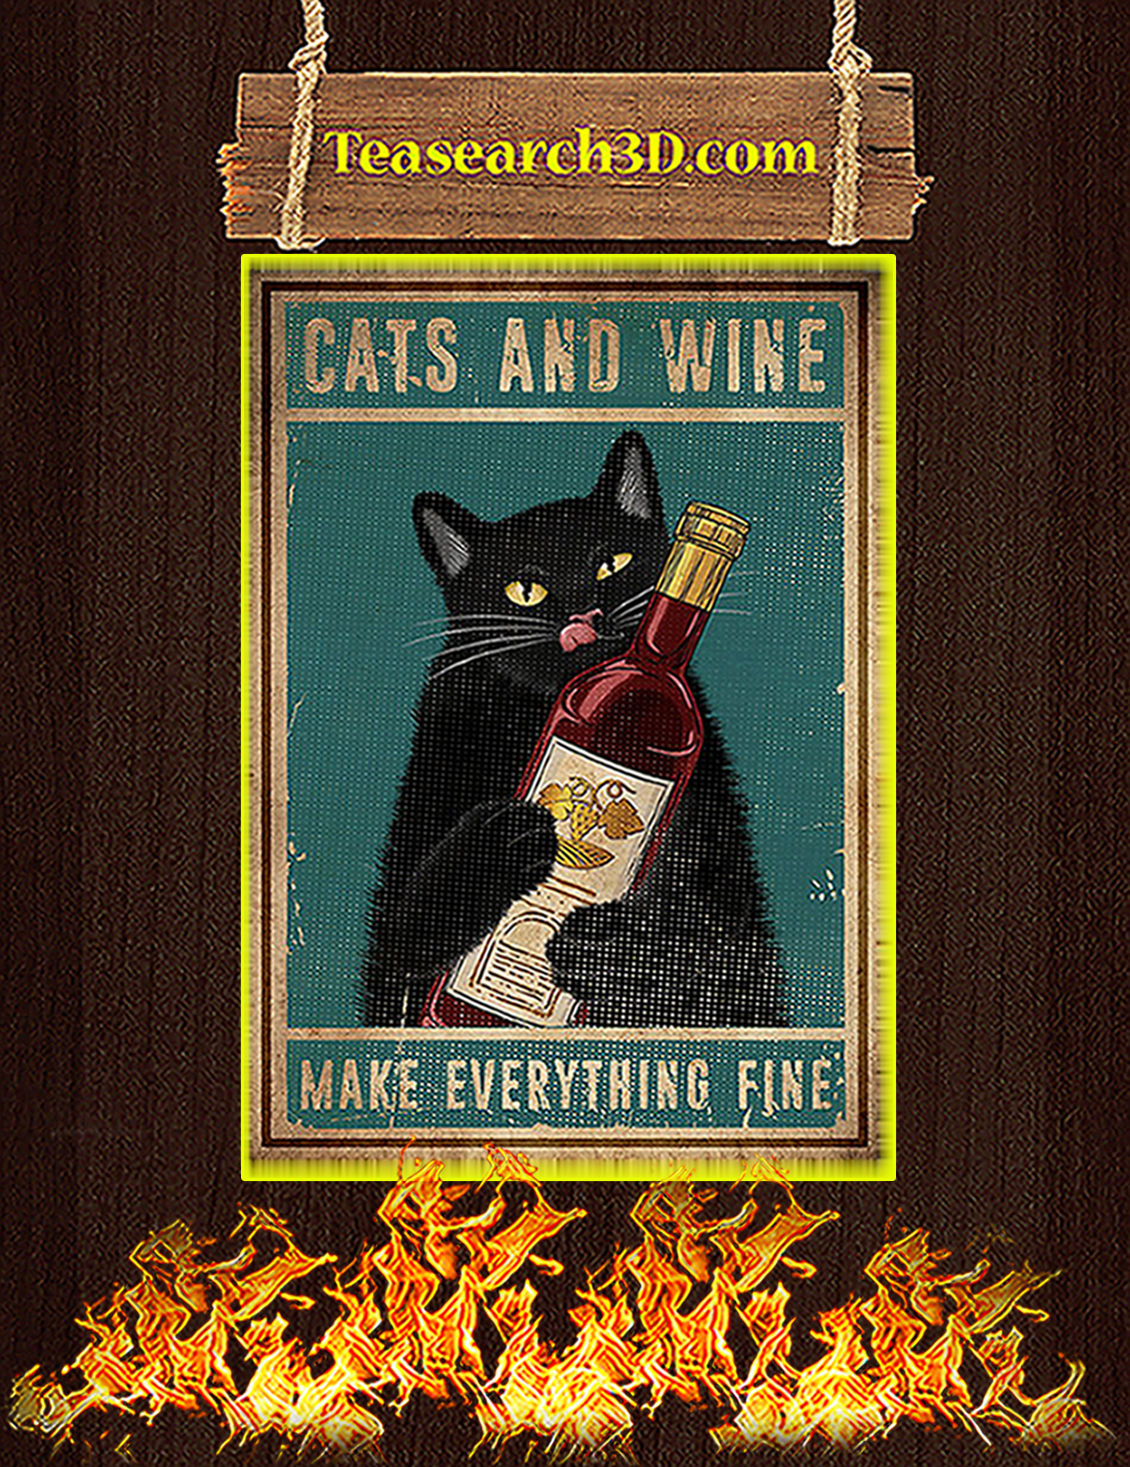 Cats and wine make everything fine poster A3